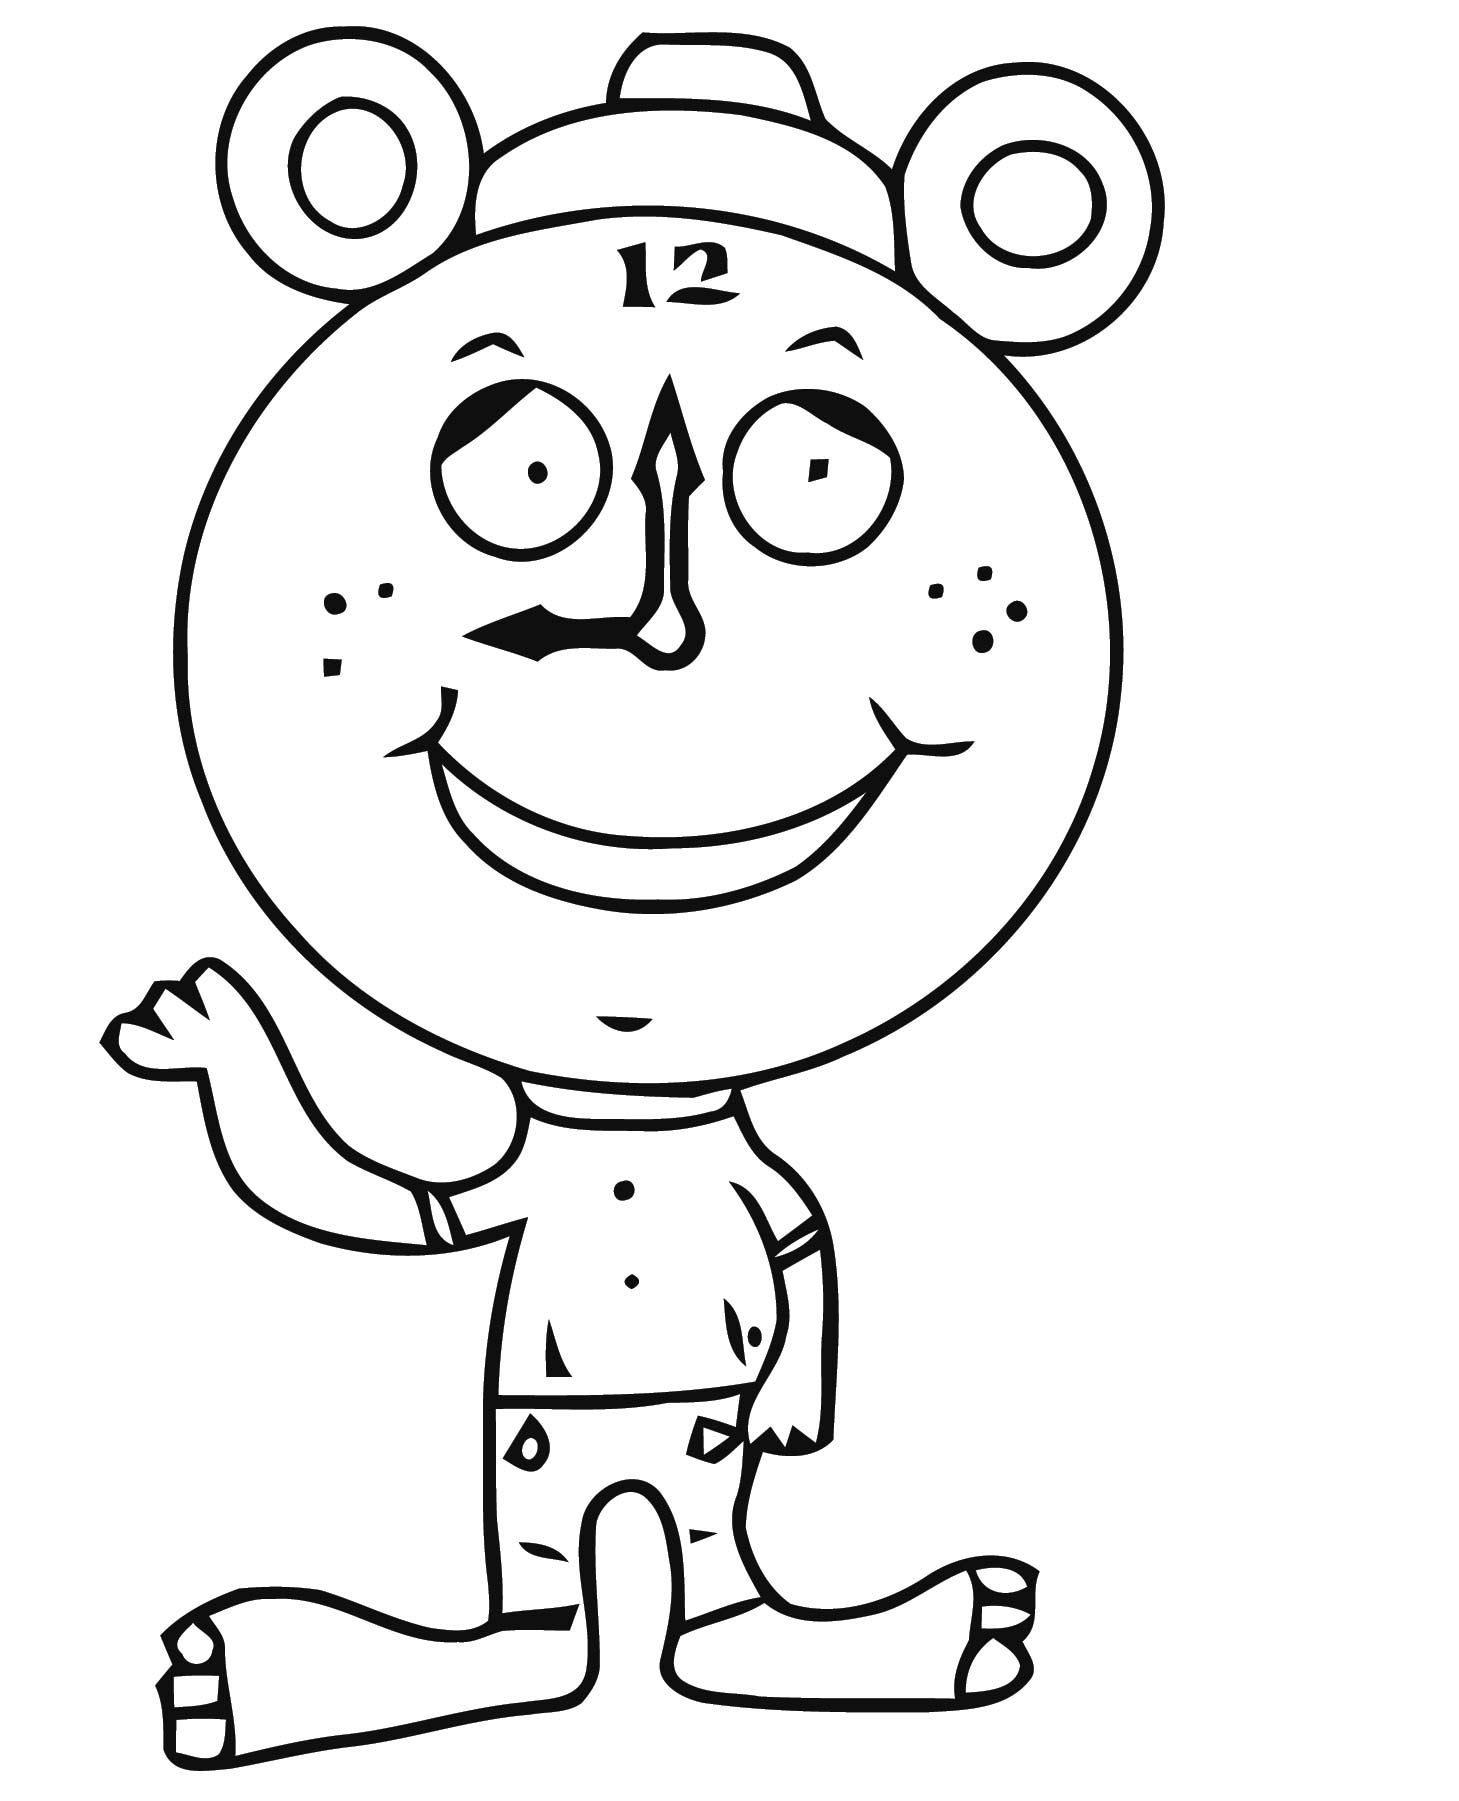 Daylight Savings Time Clock Clipa Free Printable Rt Cartoonized Free Printable Coloring Page